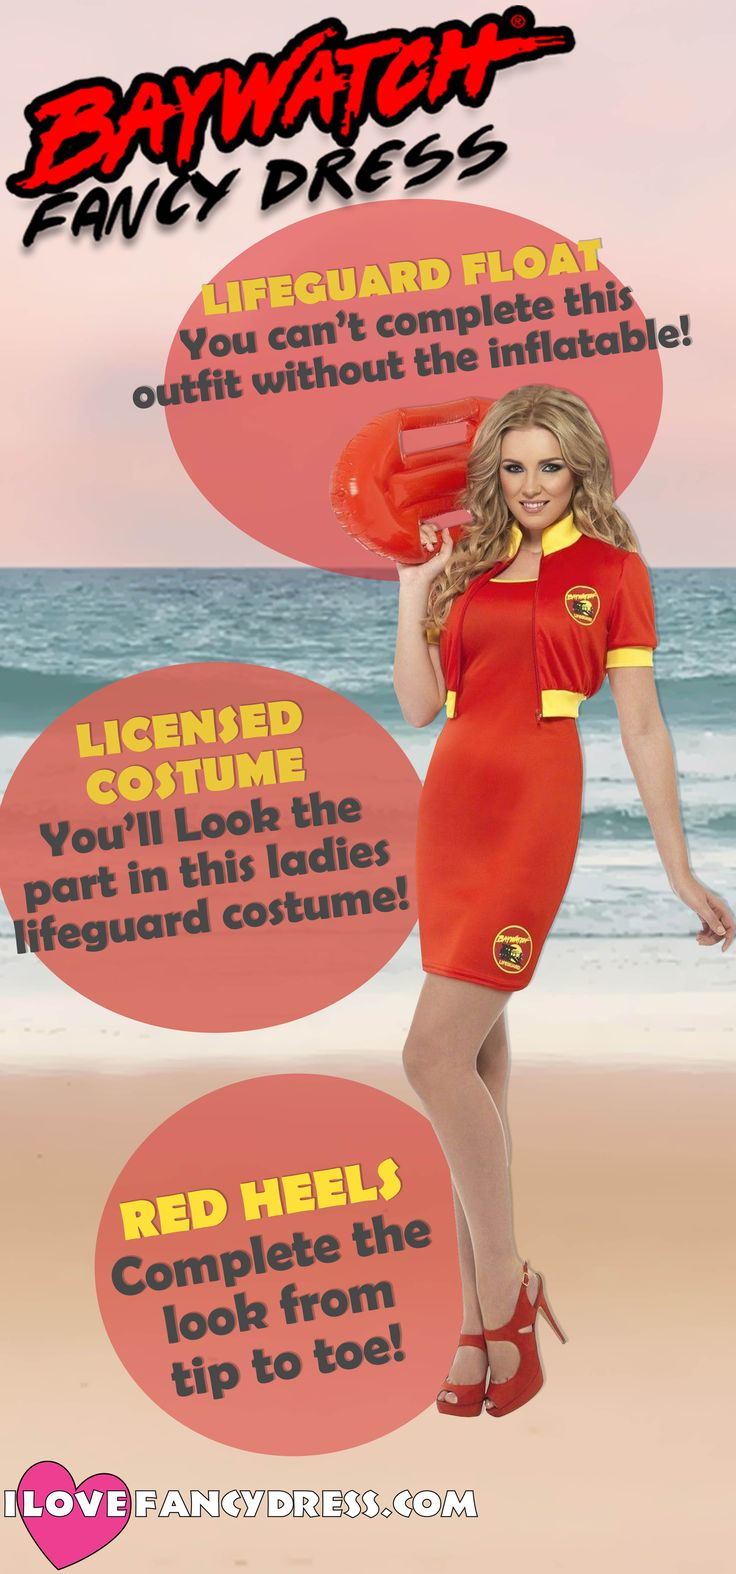 Here is a guide to some Baywatch fancy dress for women! The red dress and jacket goes so well with a pair of heels and a float